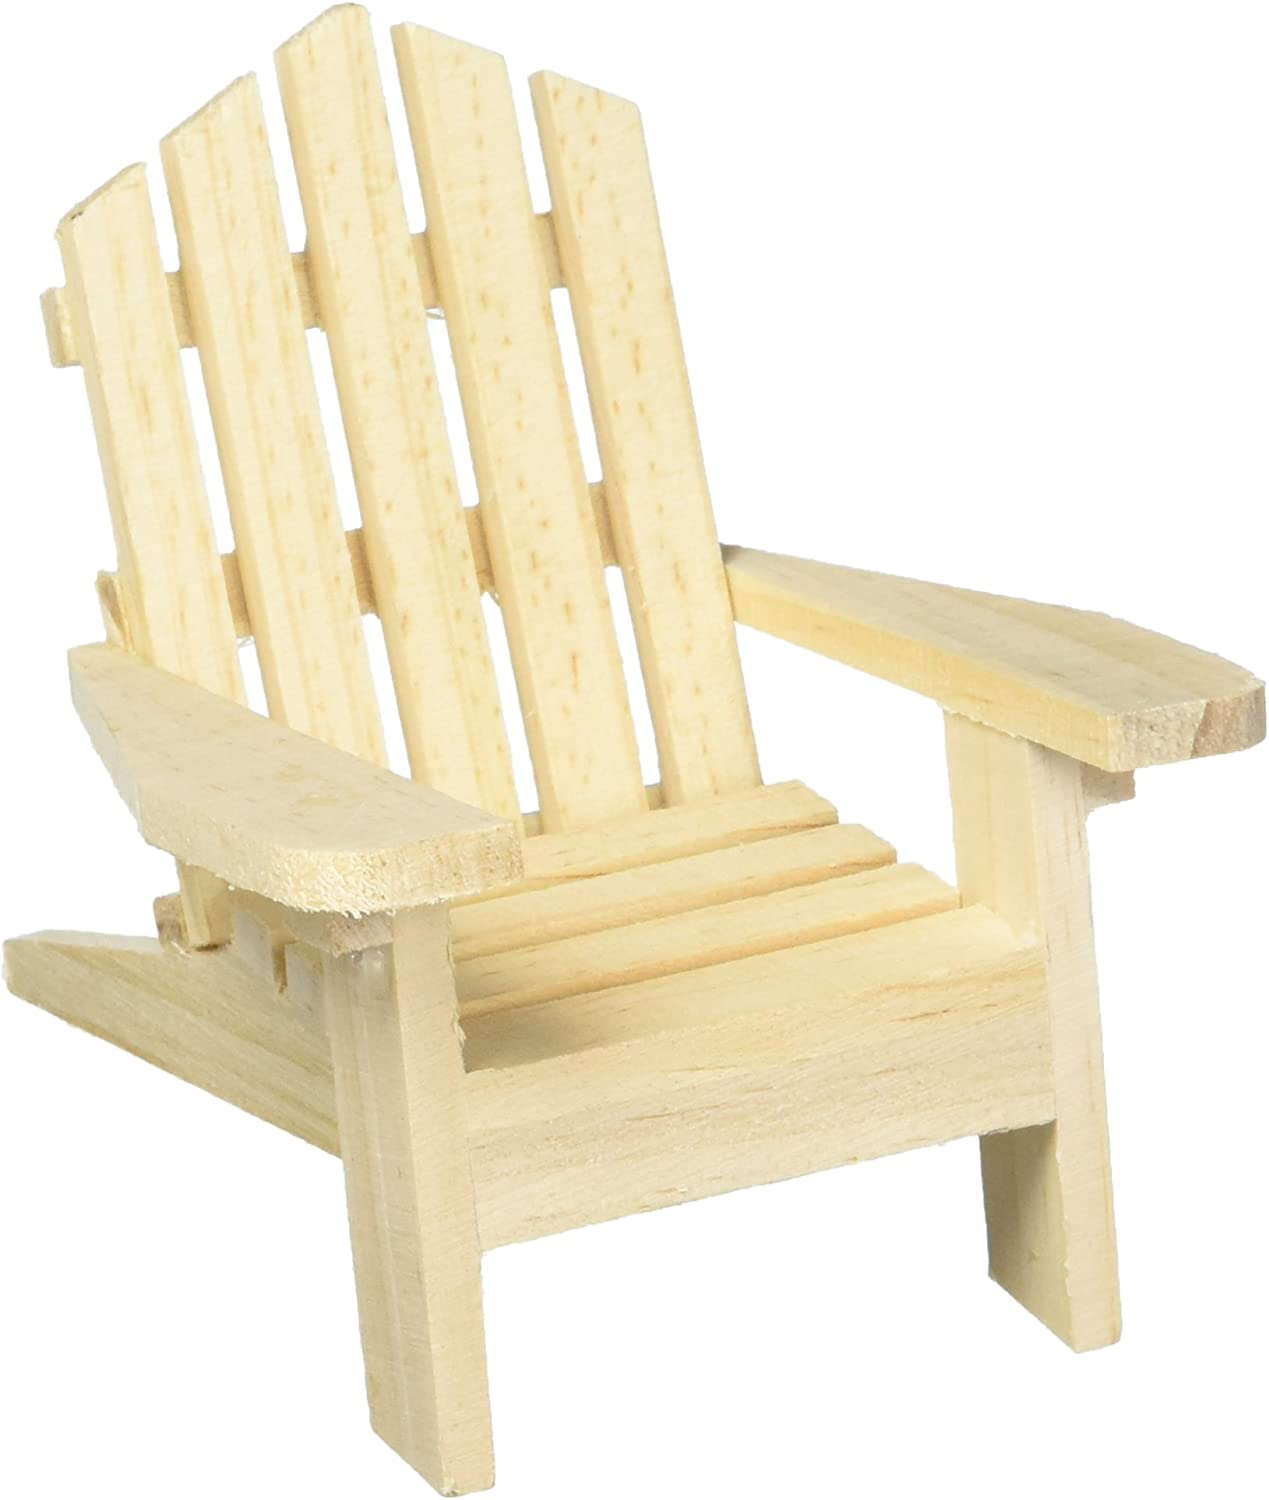 Darice 9132-66 Unfinished Wood Chair 4.5 by 6-Inch